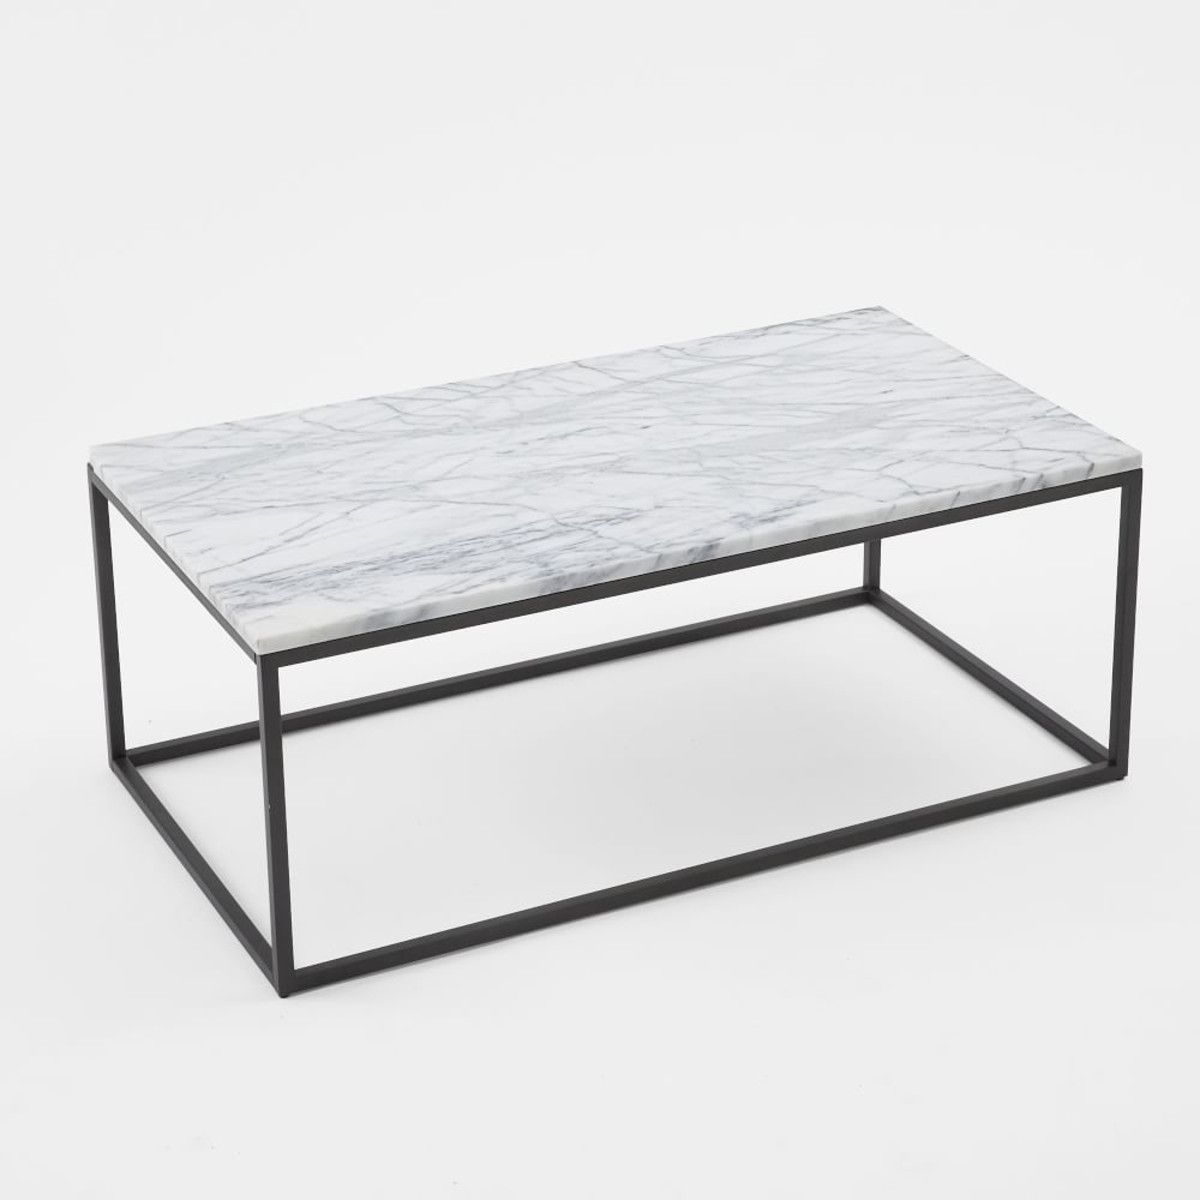 West elm marble box frame coffee table living spaces west elm marble box frame coffee table geotapseo Gallery